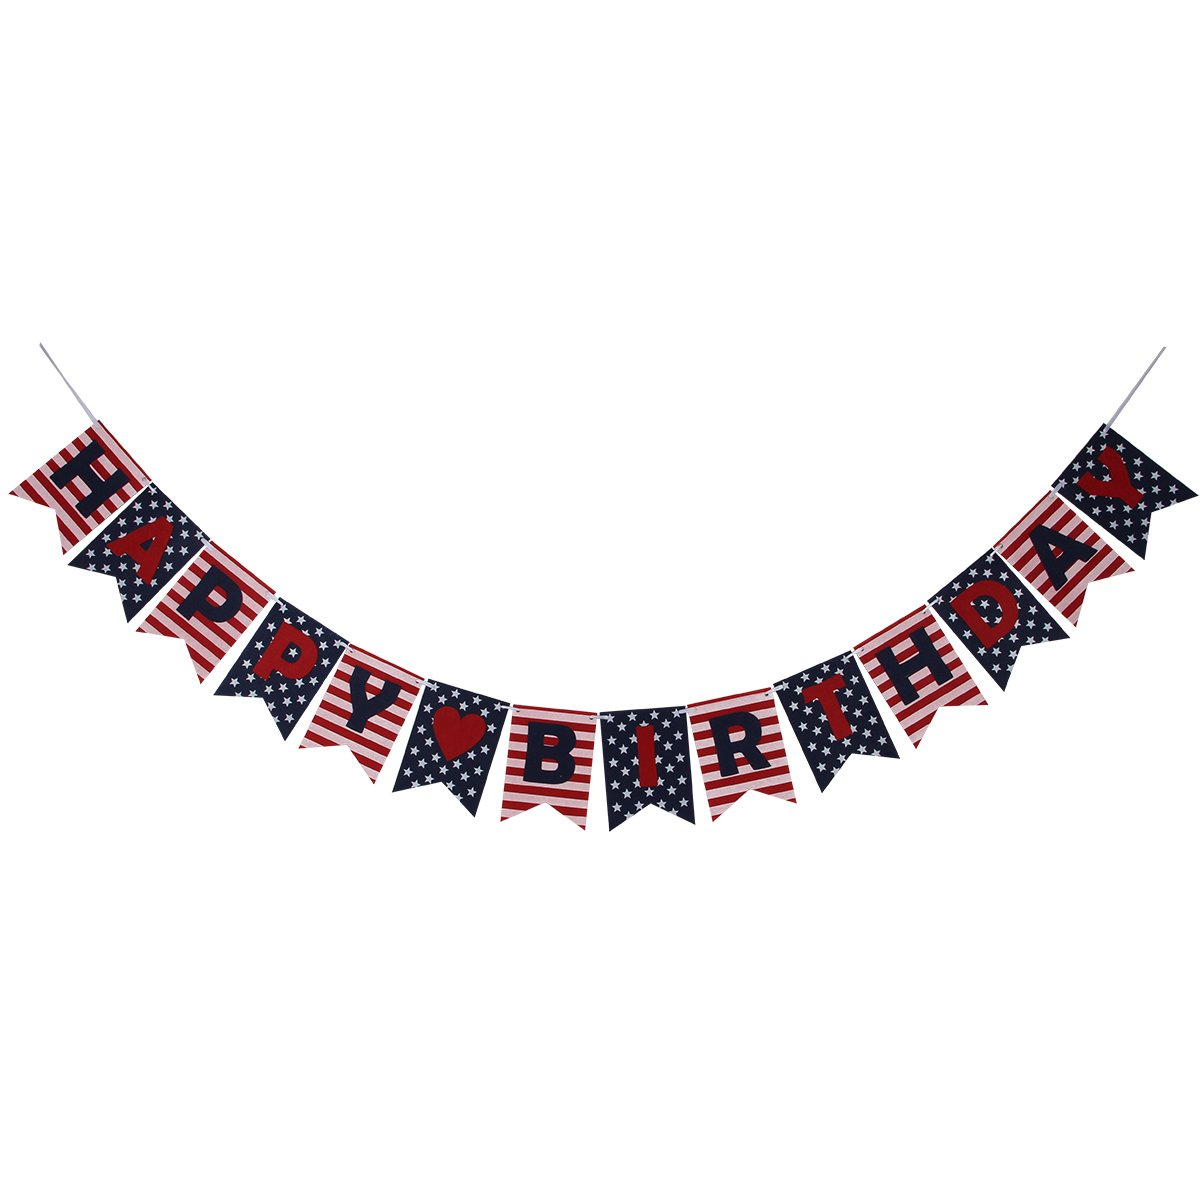 Amazon Stars And Stripes Happy Birthday Banner National Flag Style For 4th Of July Decorations Patriotic PartyParty